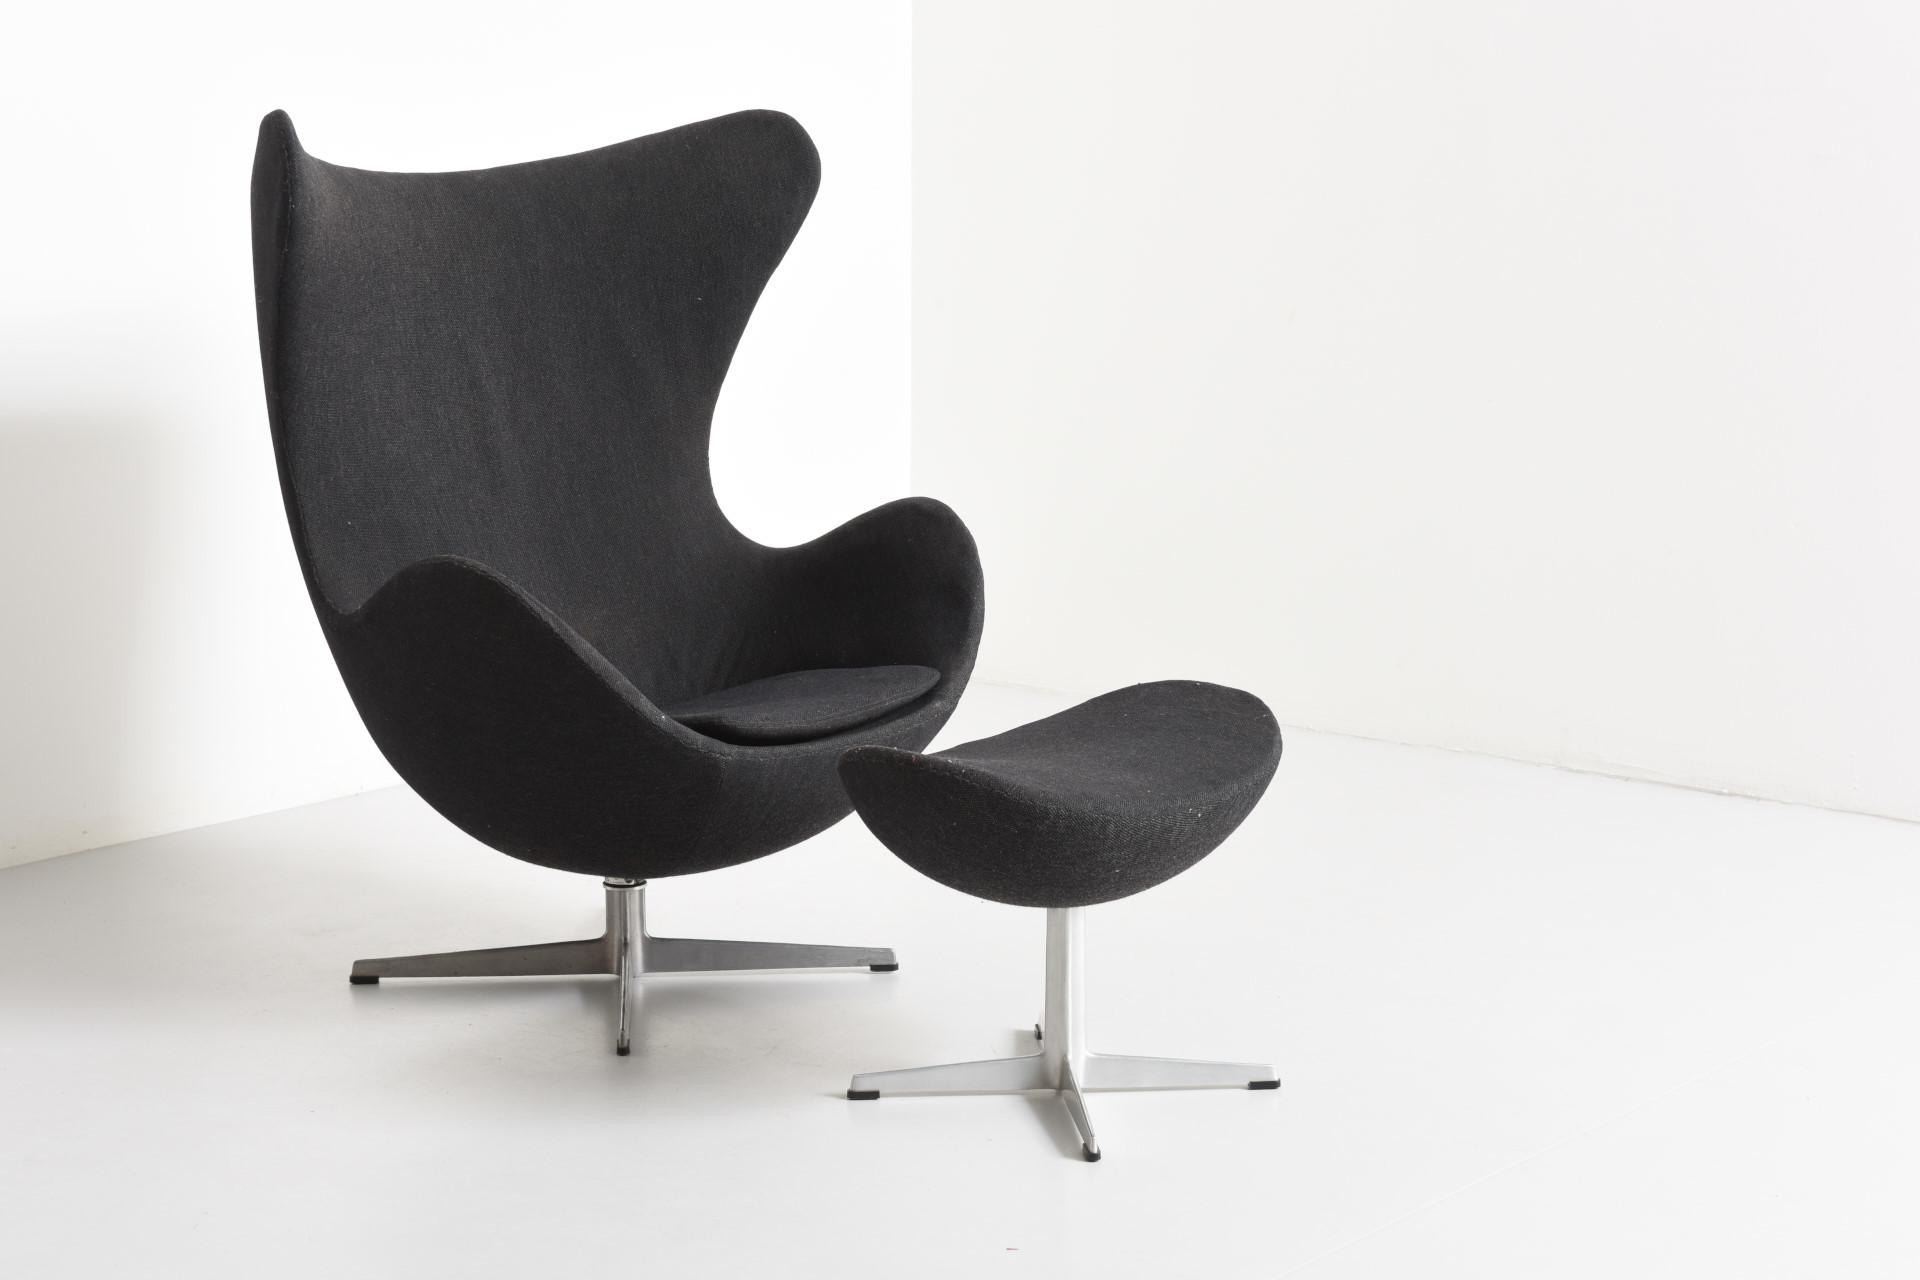 Egg Chair Ottoman Arne Jacobsen Modestfurniture